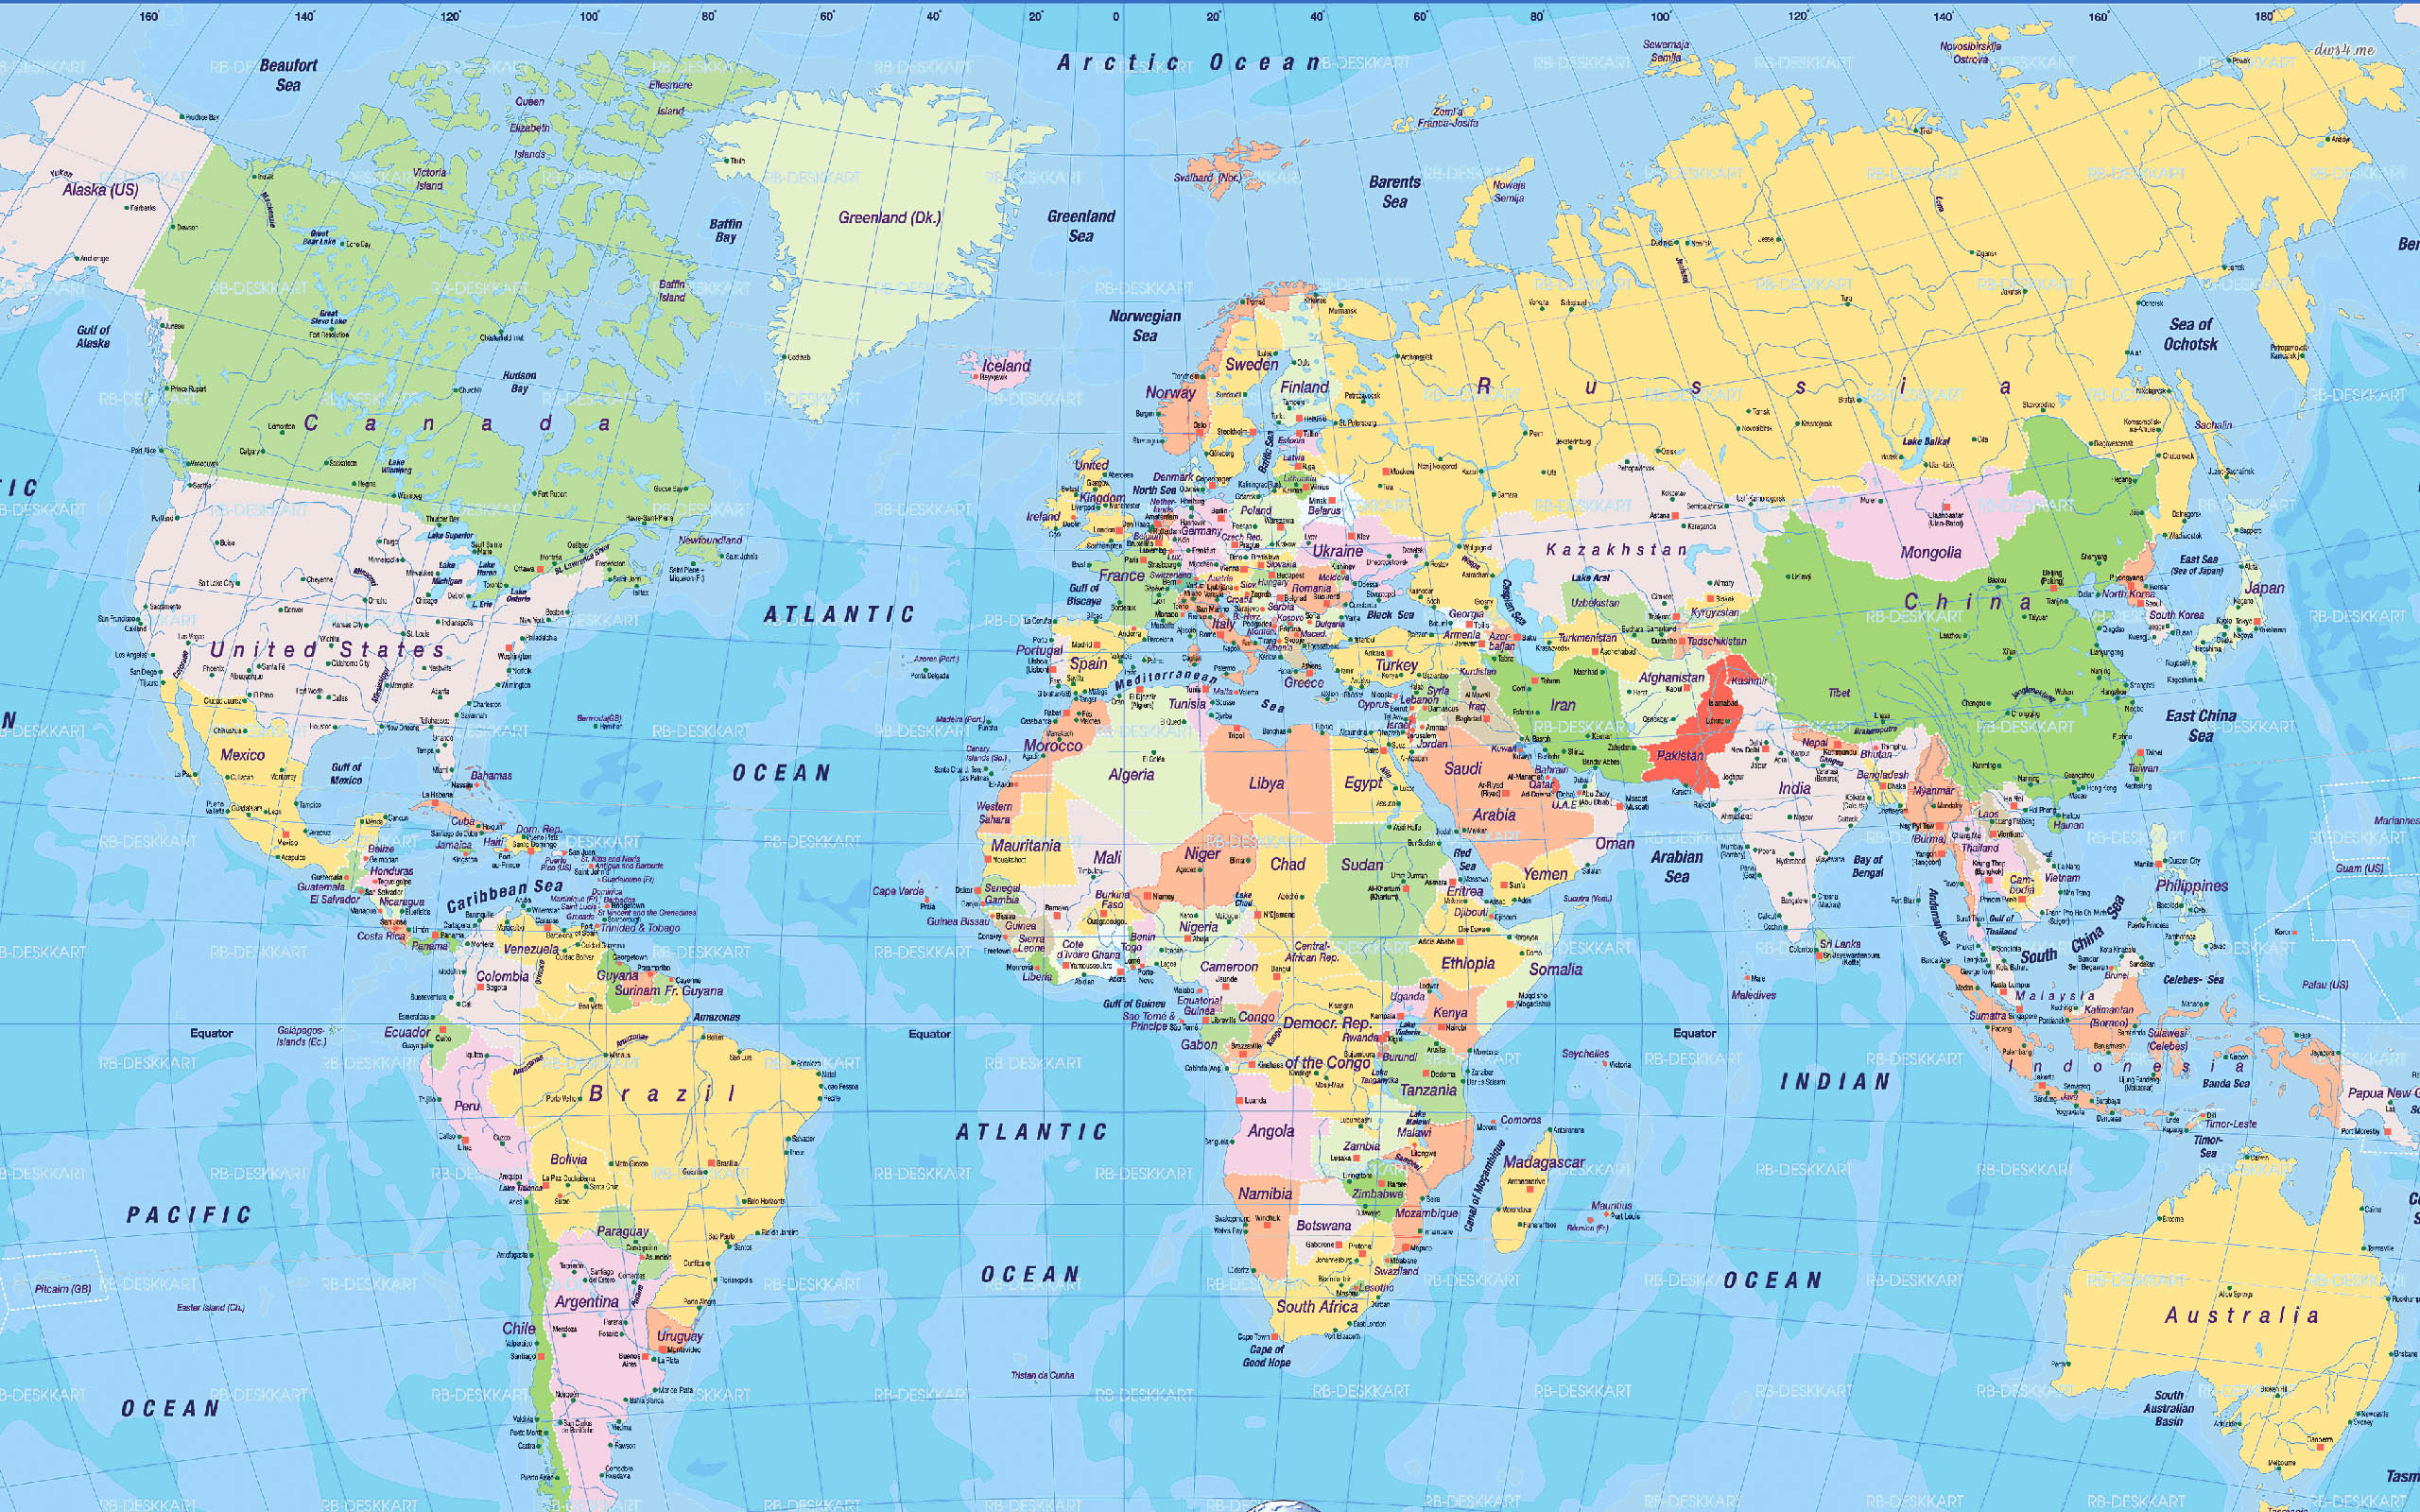 Internet world map wallpaper world map wallpapers high resolution world map desktop wallpaper 183 gumiabroncs Choice Image